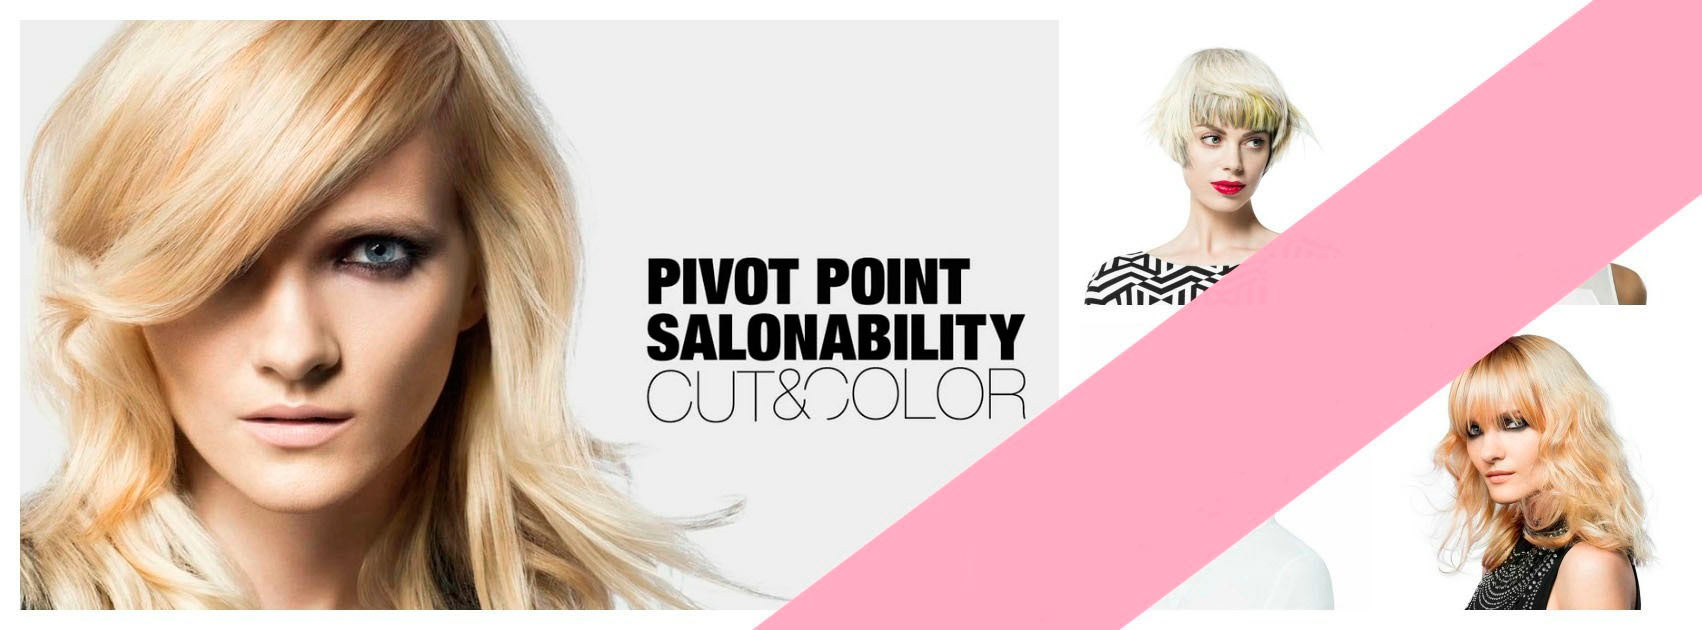 Academia Pivot Point cut and color